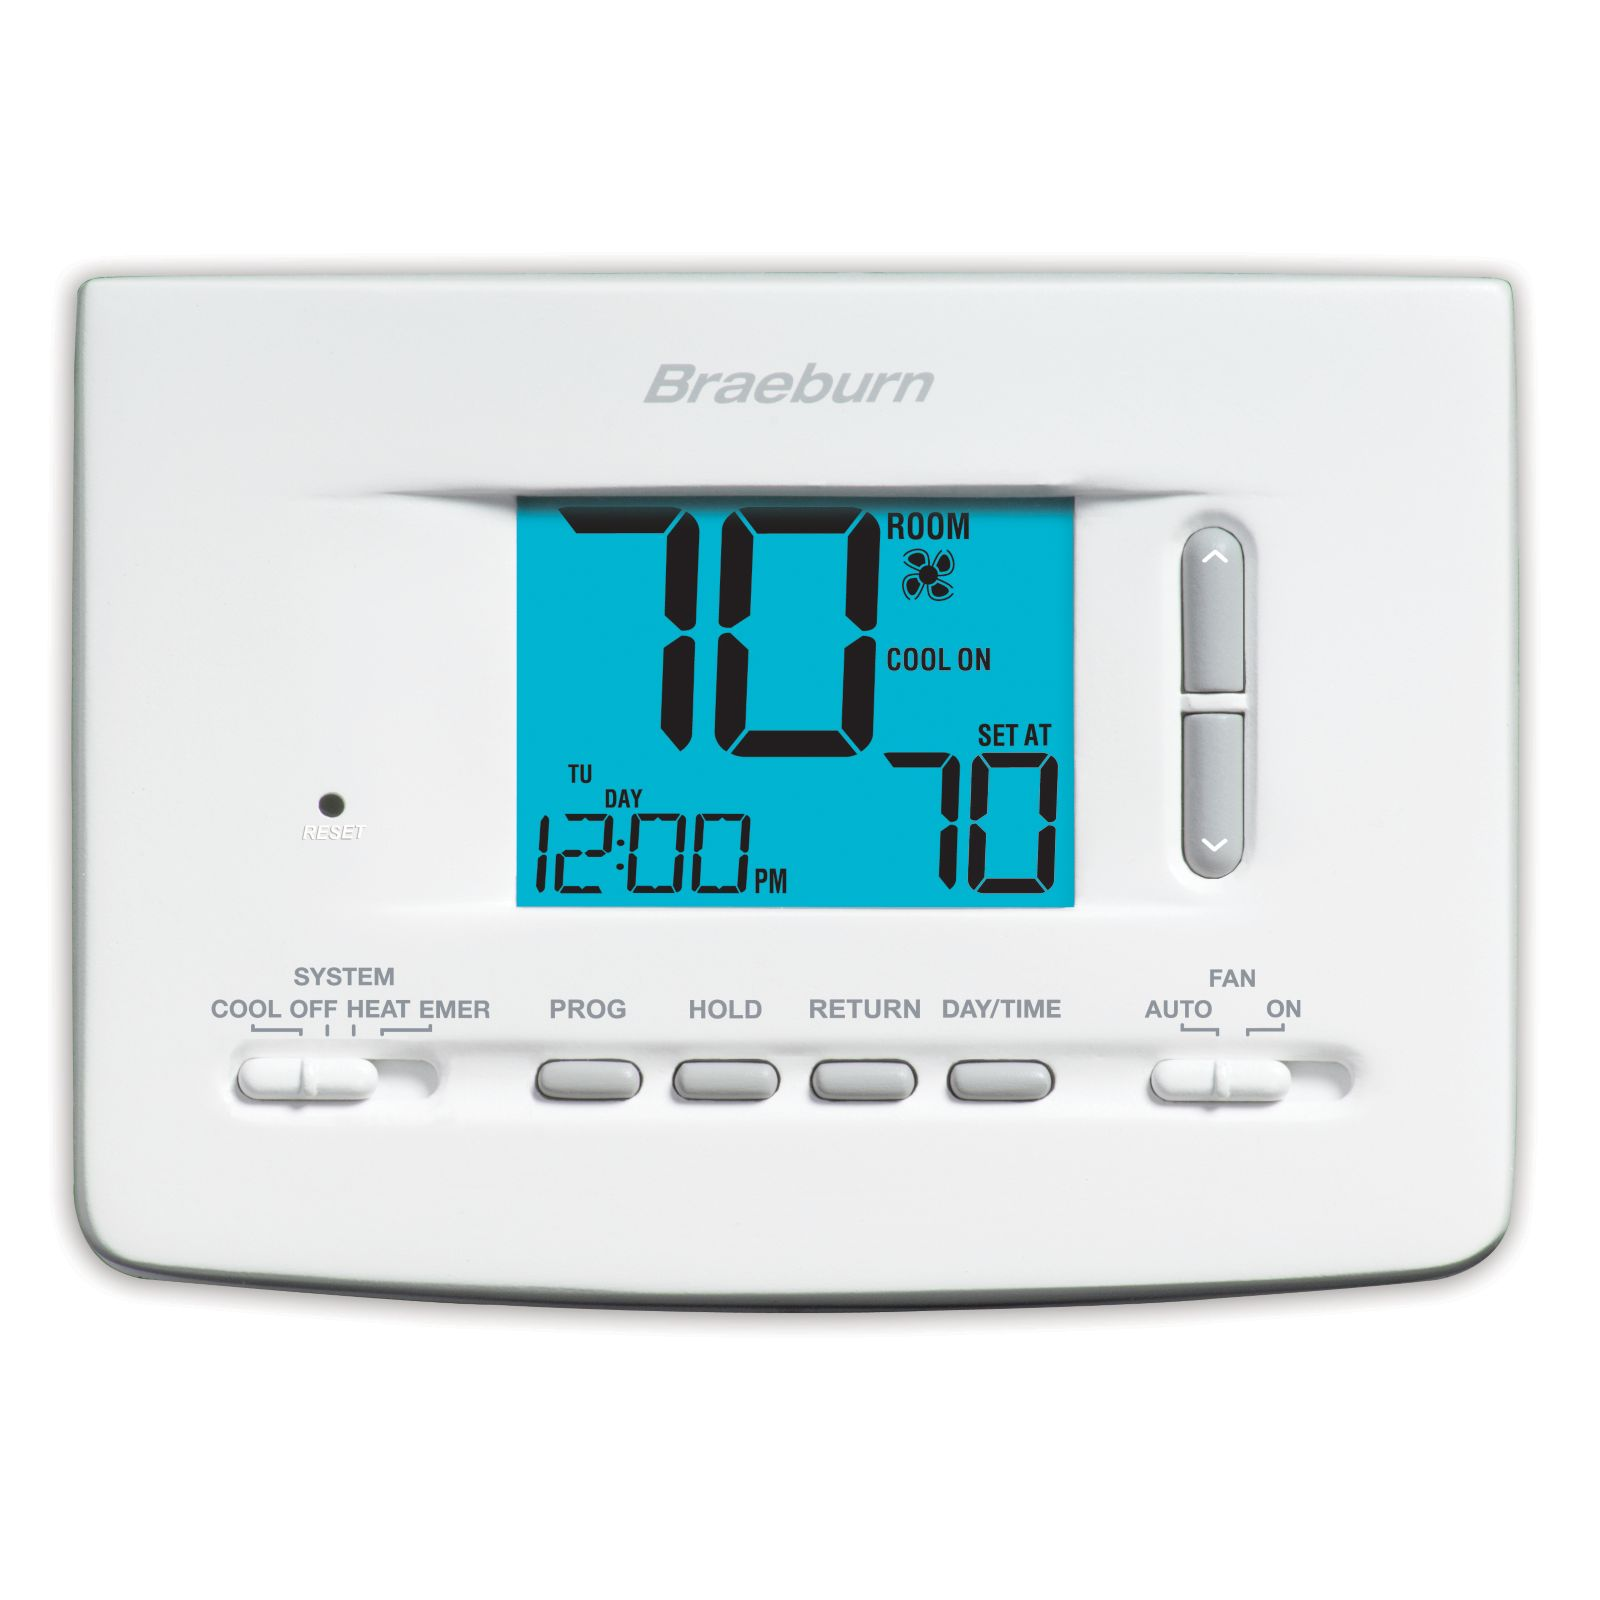 Braeburn 2220 - Economy 5-2 Day Programmable Thermostat 2H / 2C